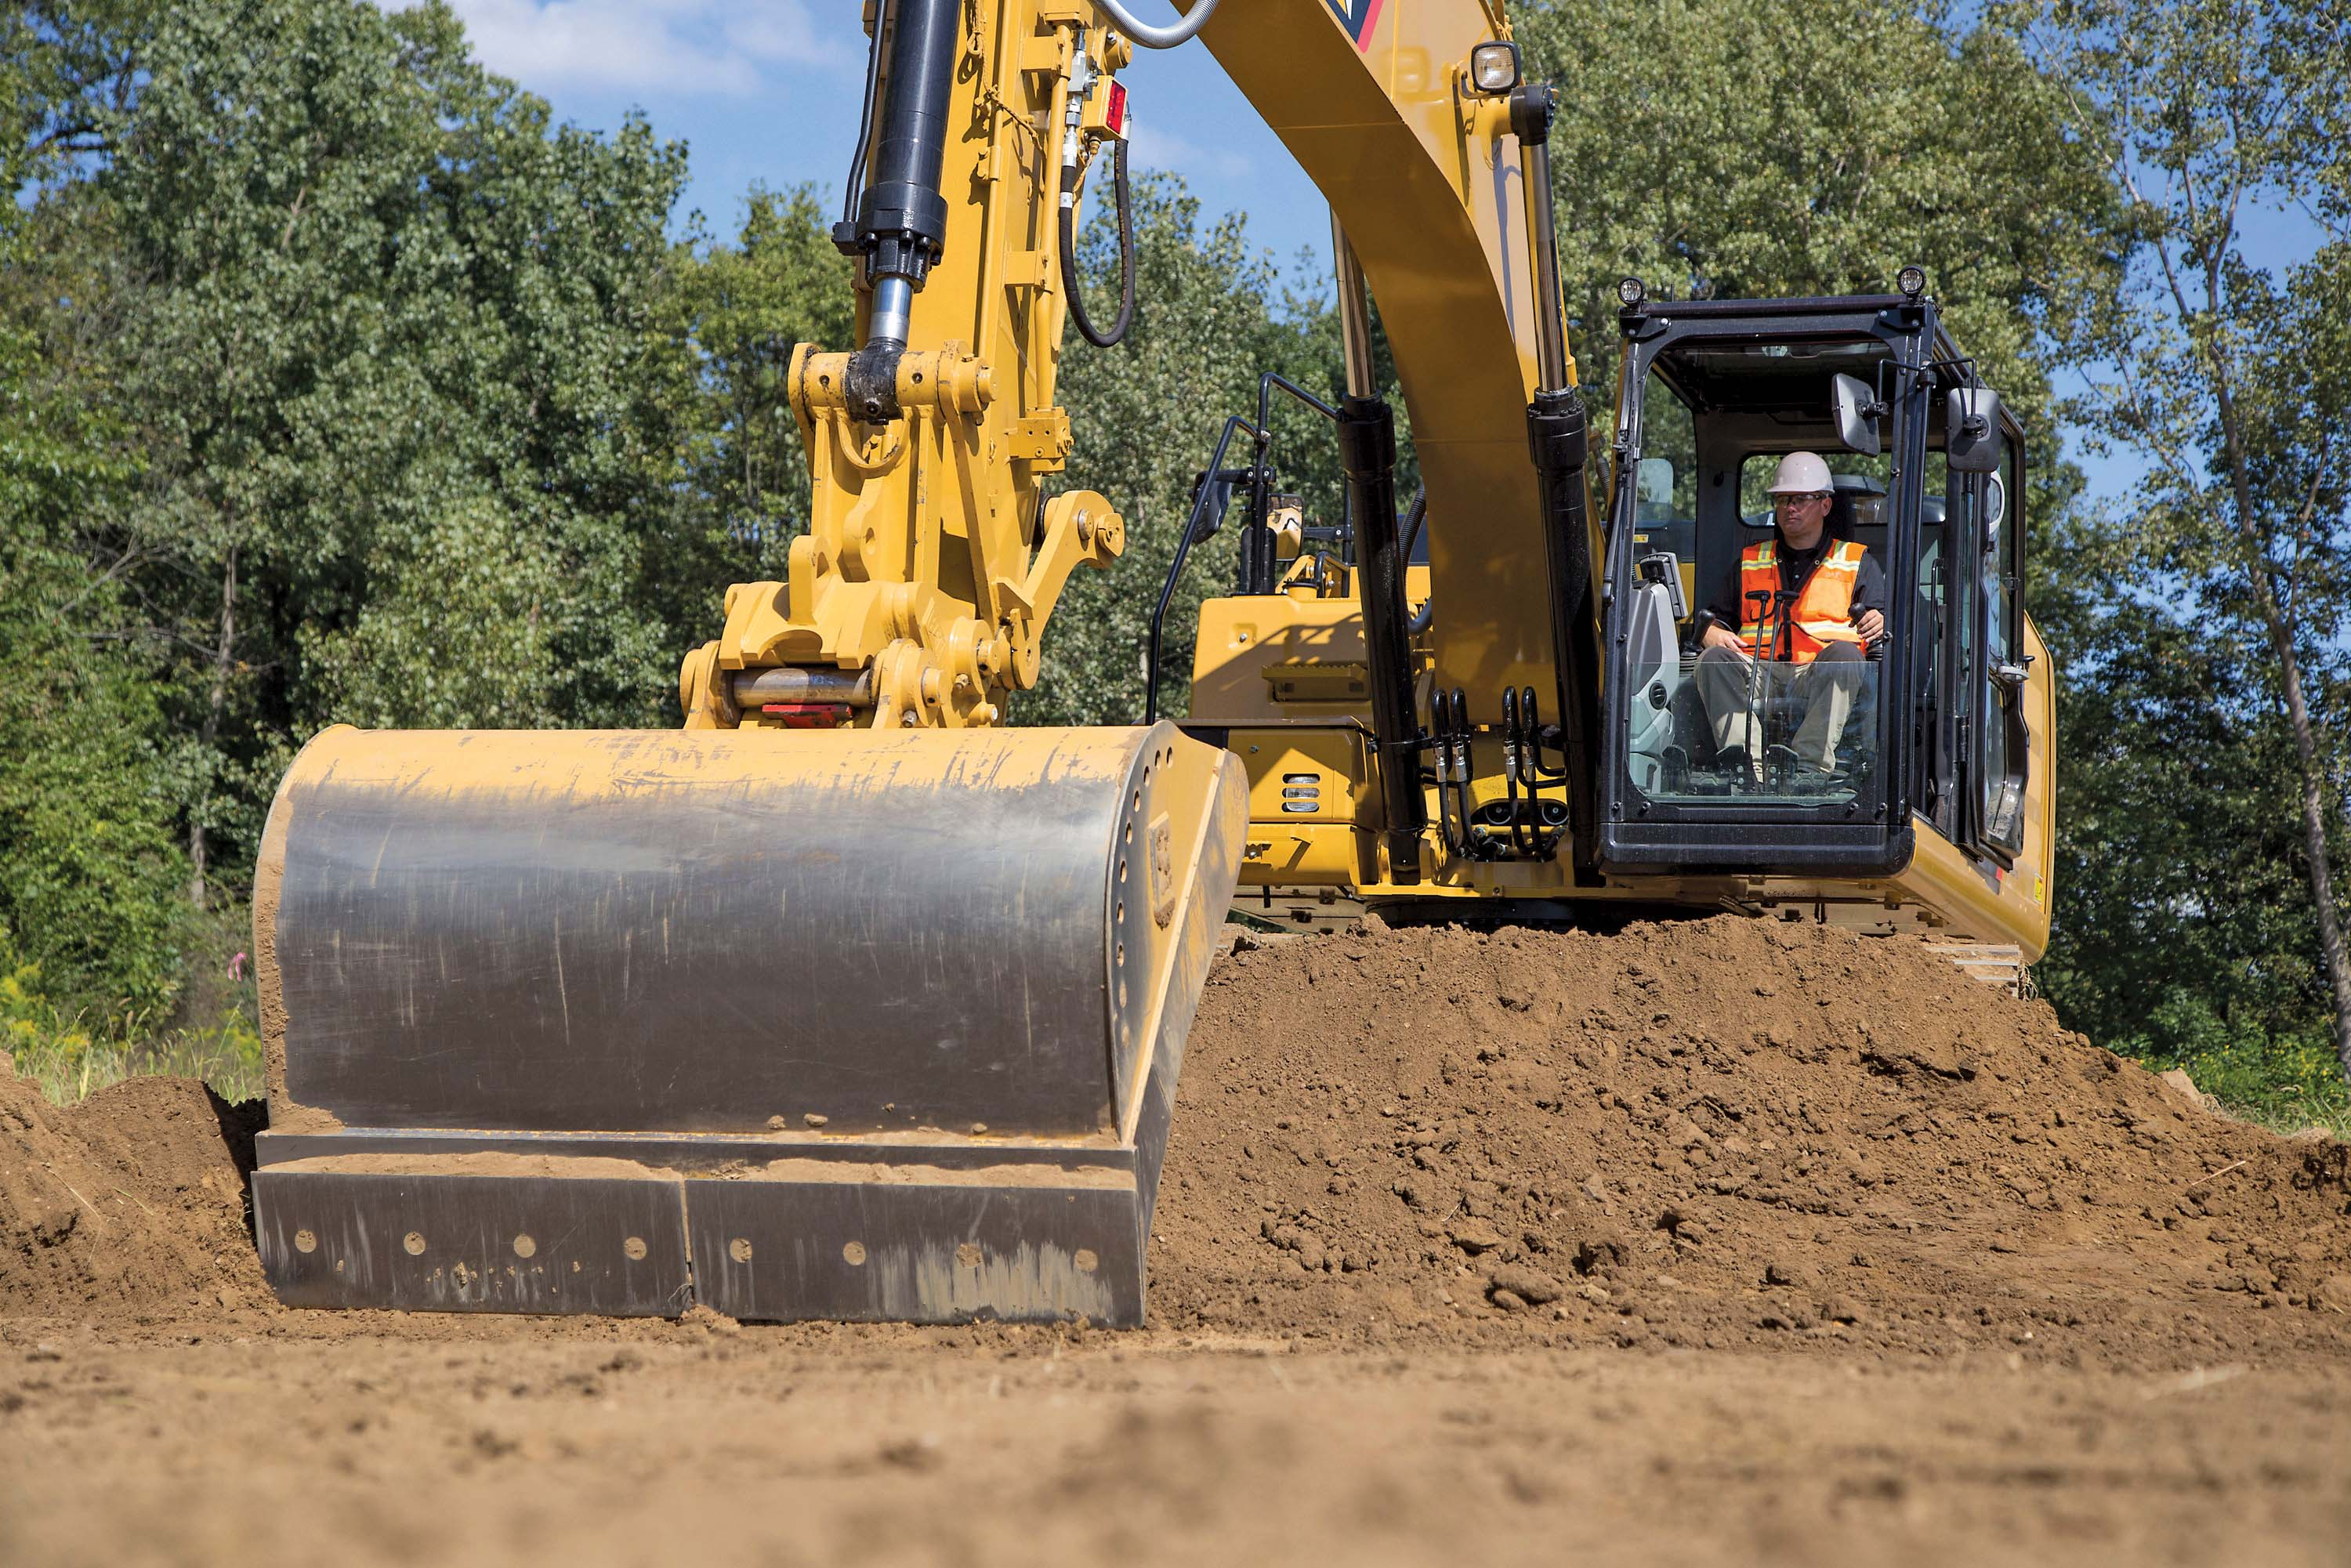 Caterpillar S Grade With Assist For Excellent Excavator Grade Control Aggregates Business